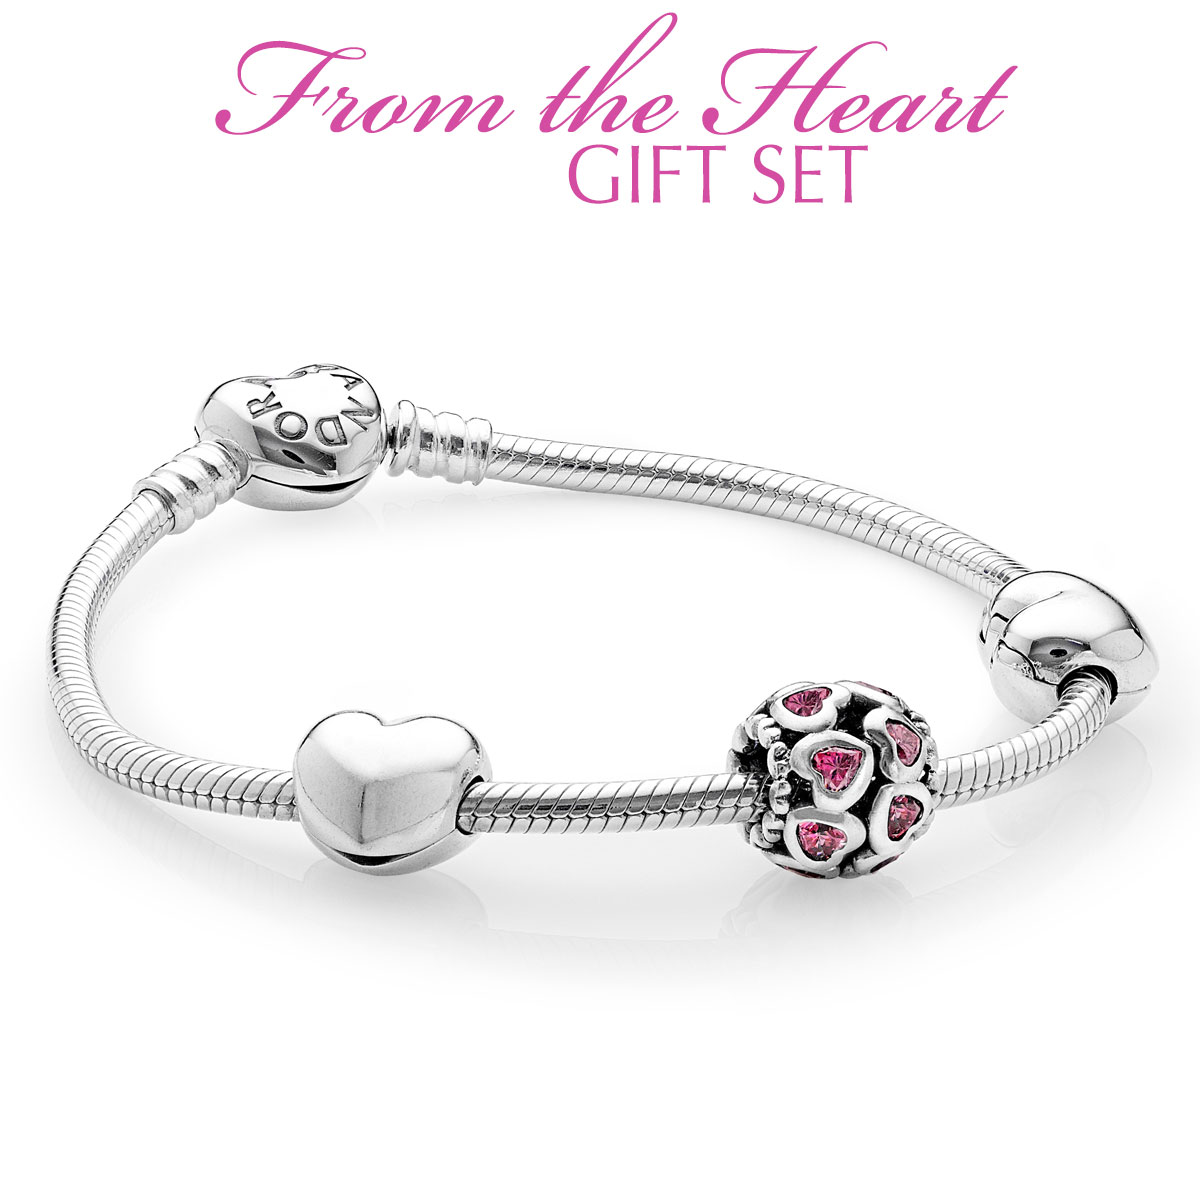 349522-PANDORA From the Heart Bracelet Gift Set LIMITED QUANTITIES!